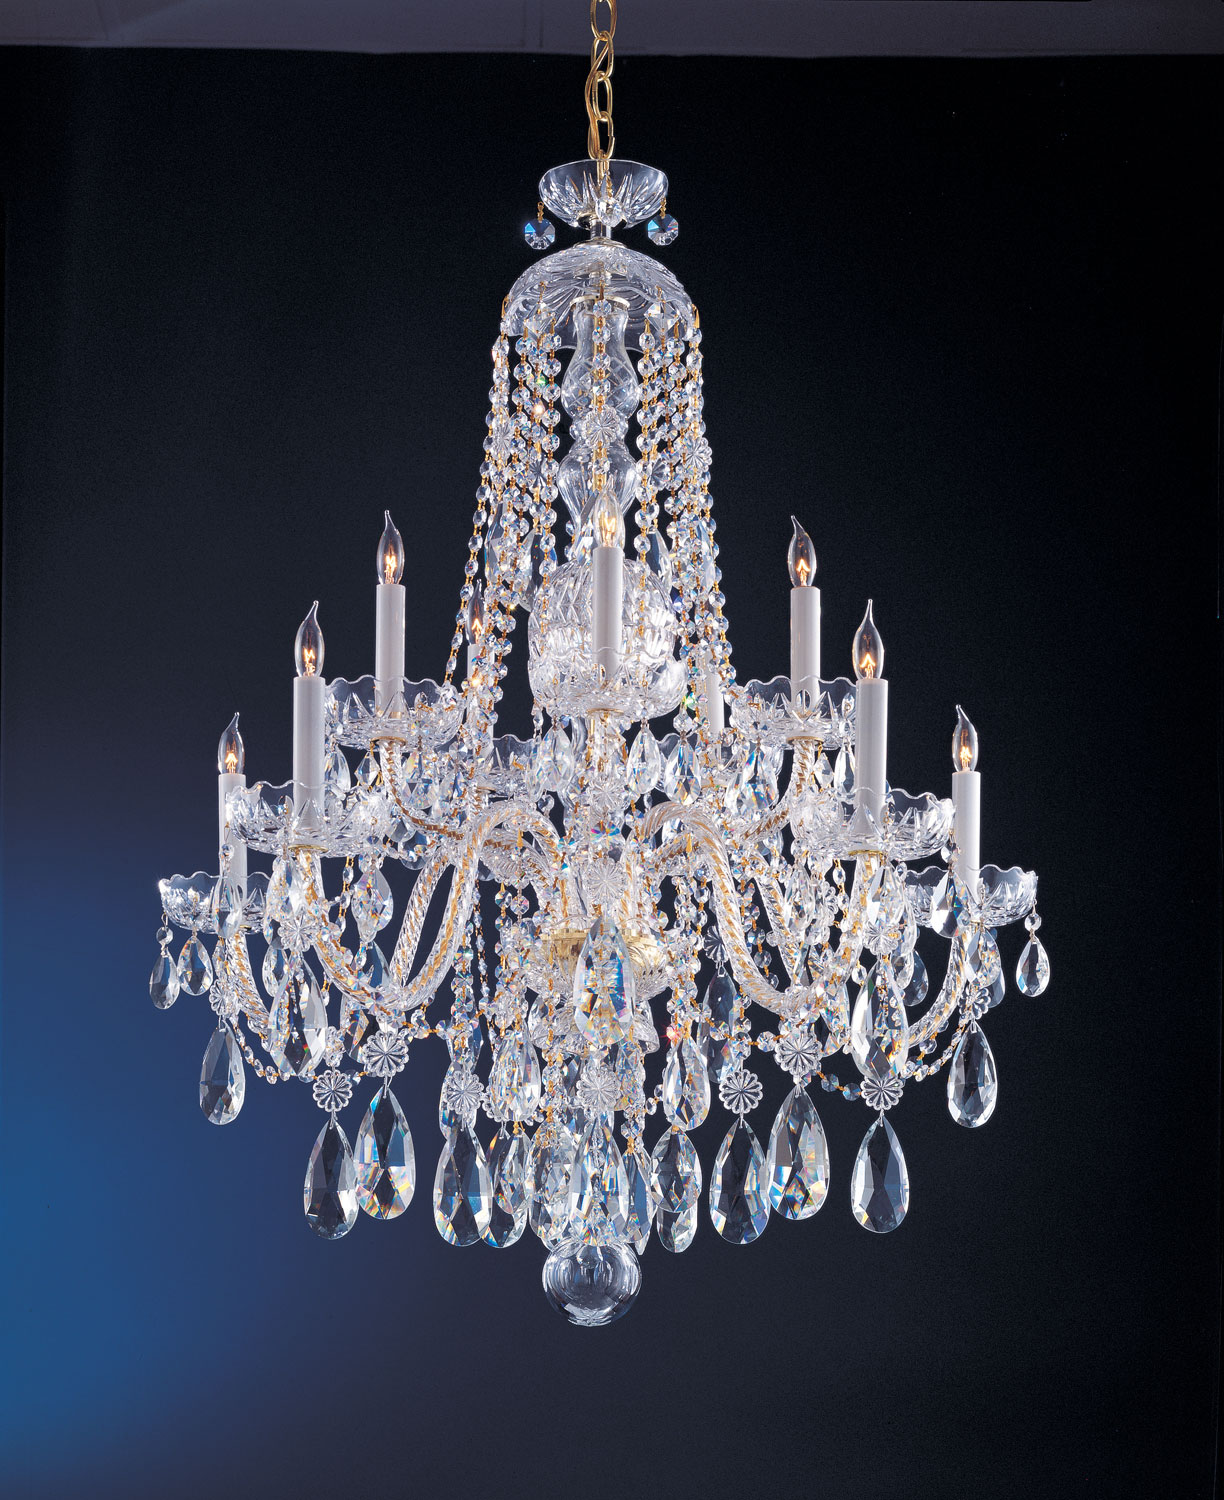 Crystorama 1110-PB-CL-S Five Light Chandeliers by Crystorama